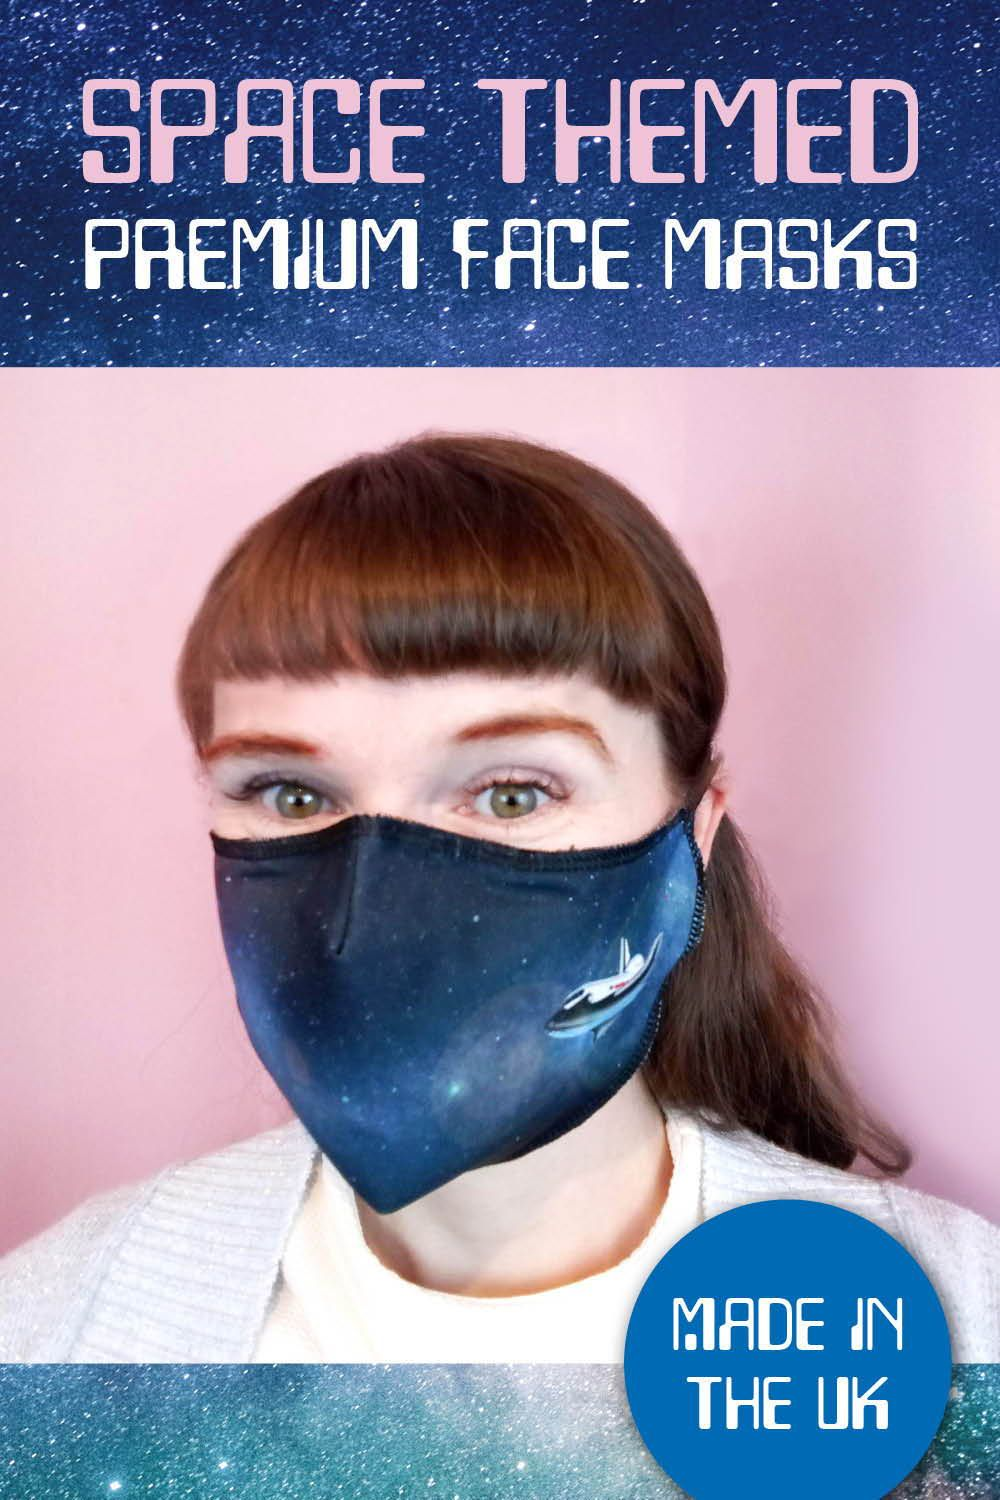 Premium Face Mask with Filter and Nose Wire Space Themed